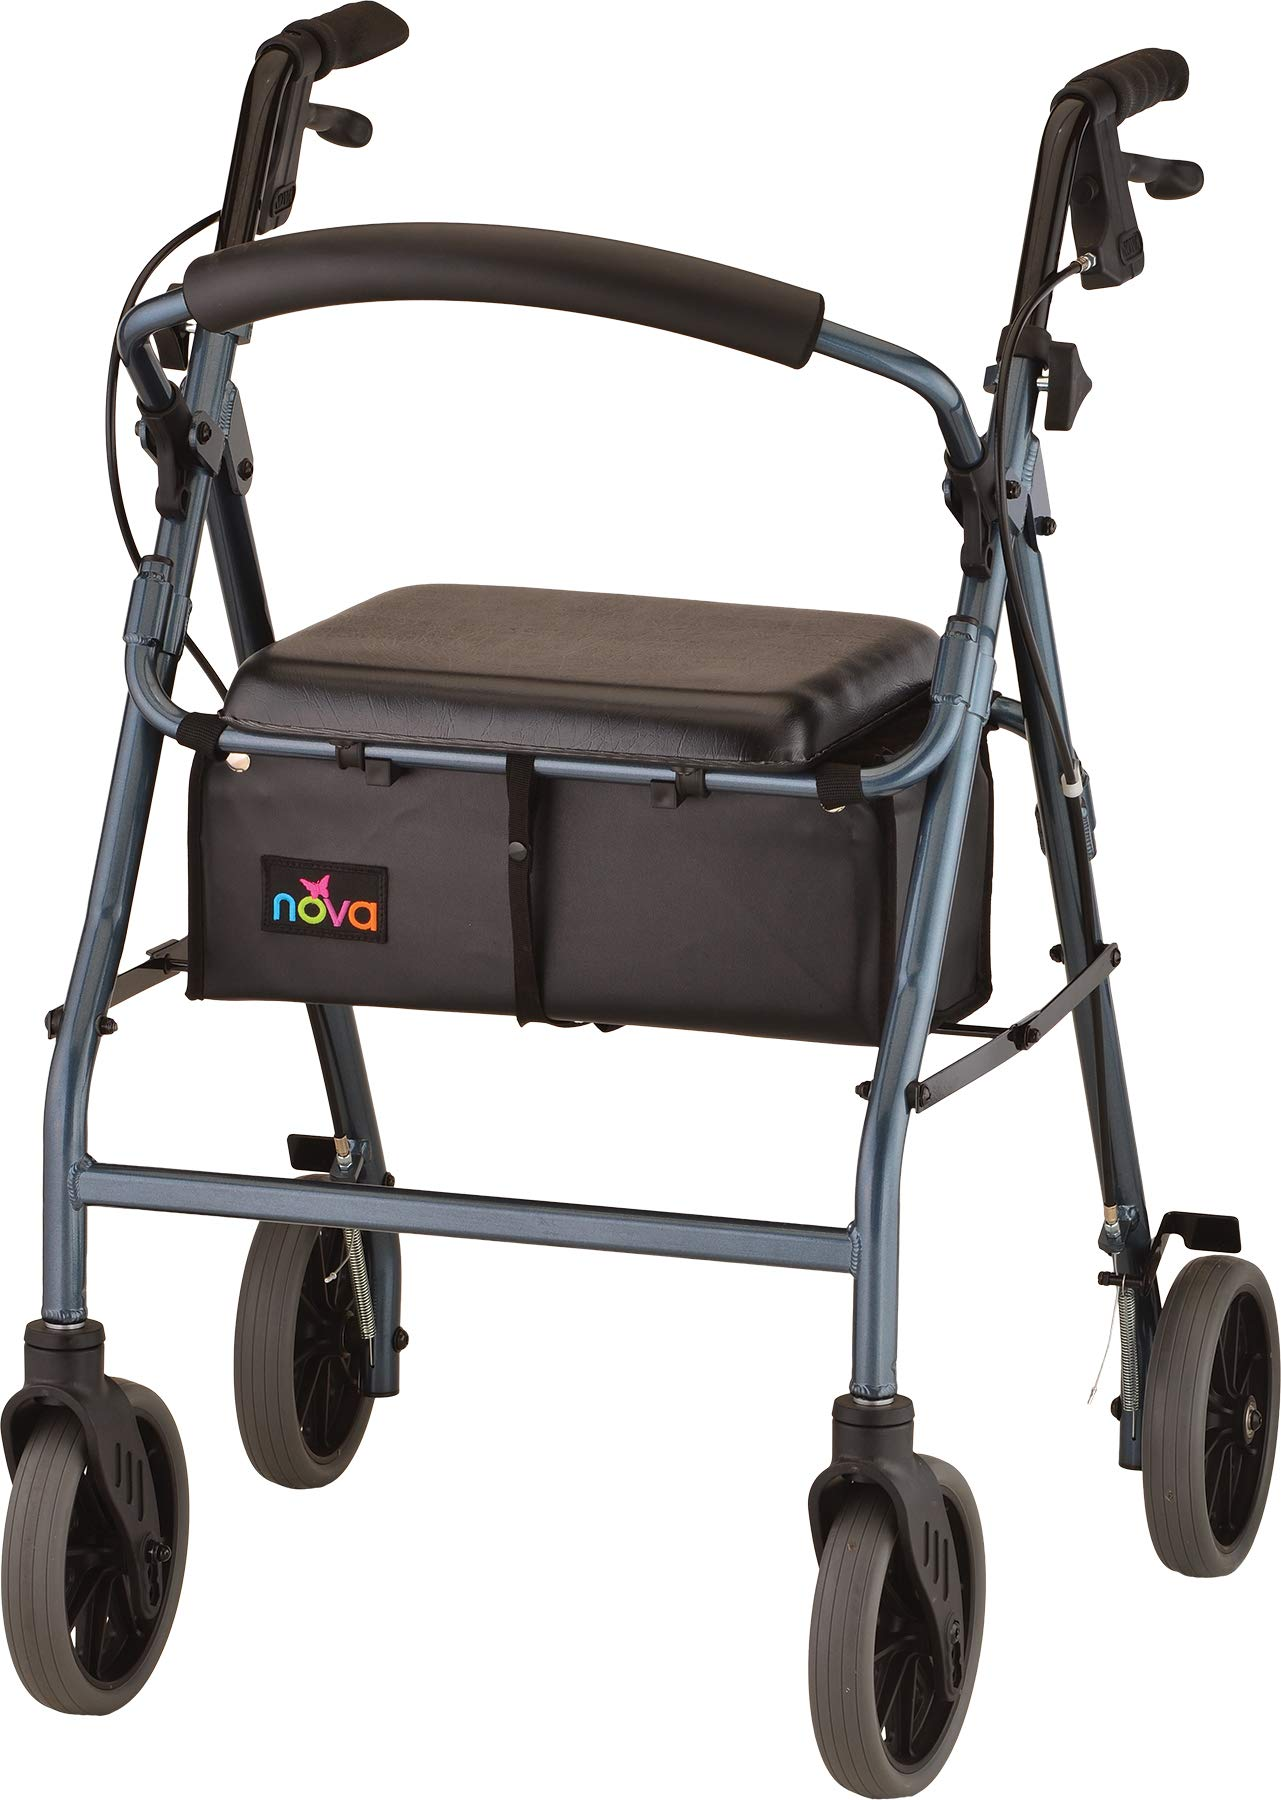 NOVA Zoom Rollator Walker with 24'' Seat Height, Blue by NOVA Medical Products